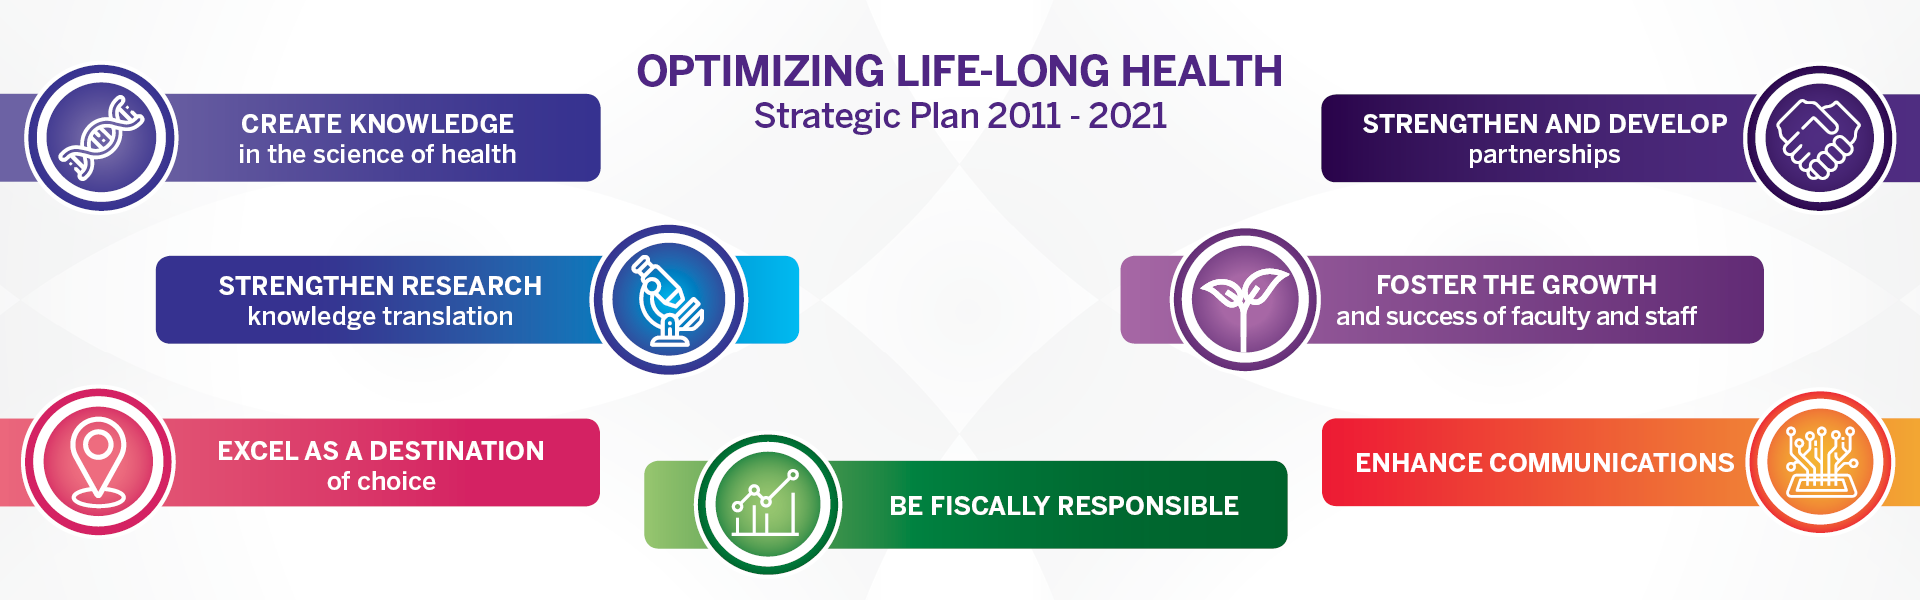 Schulich Medicine & Dentistry Strategic Plan 2011-2021